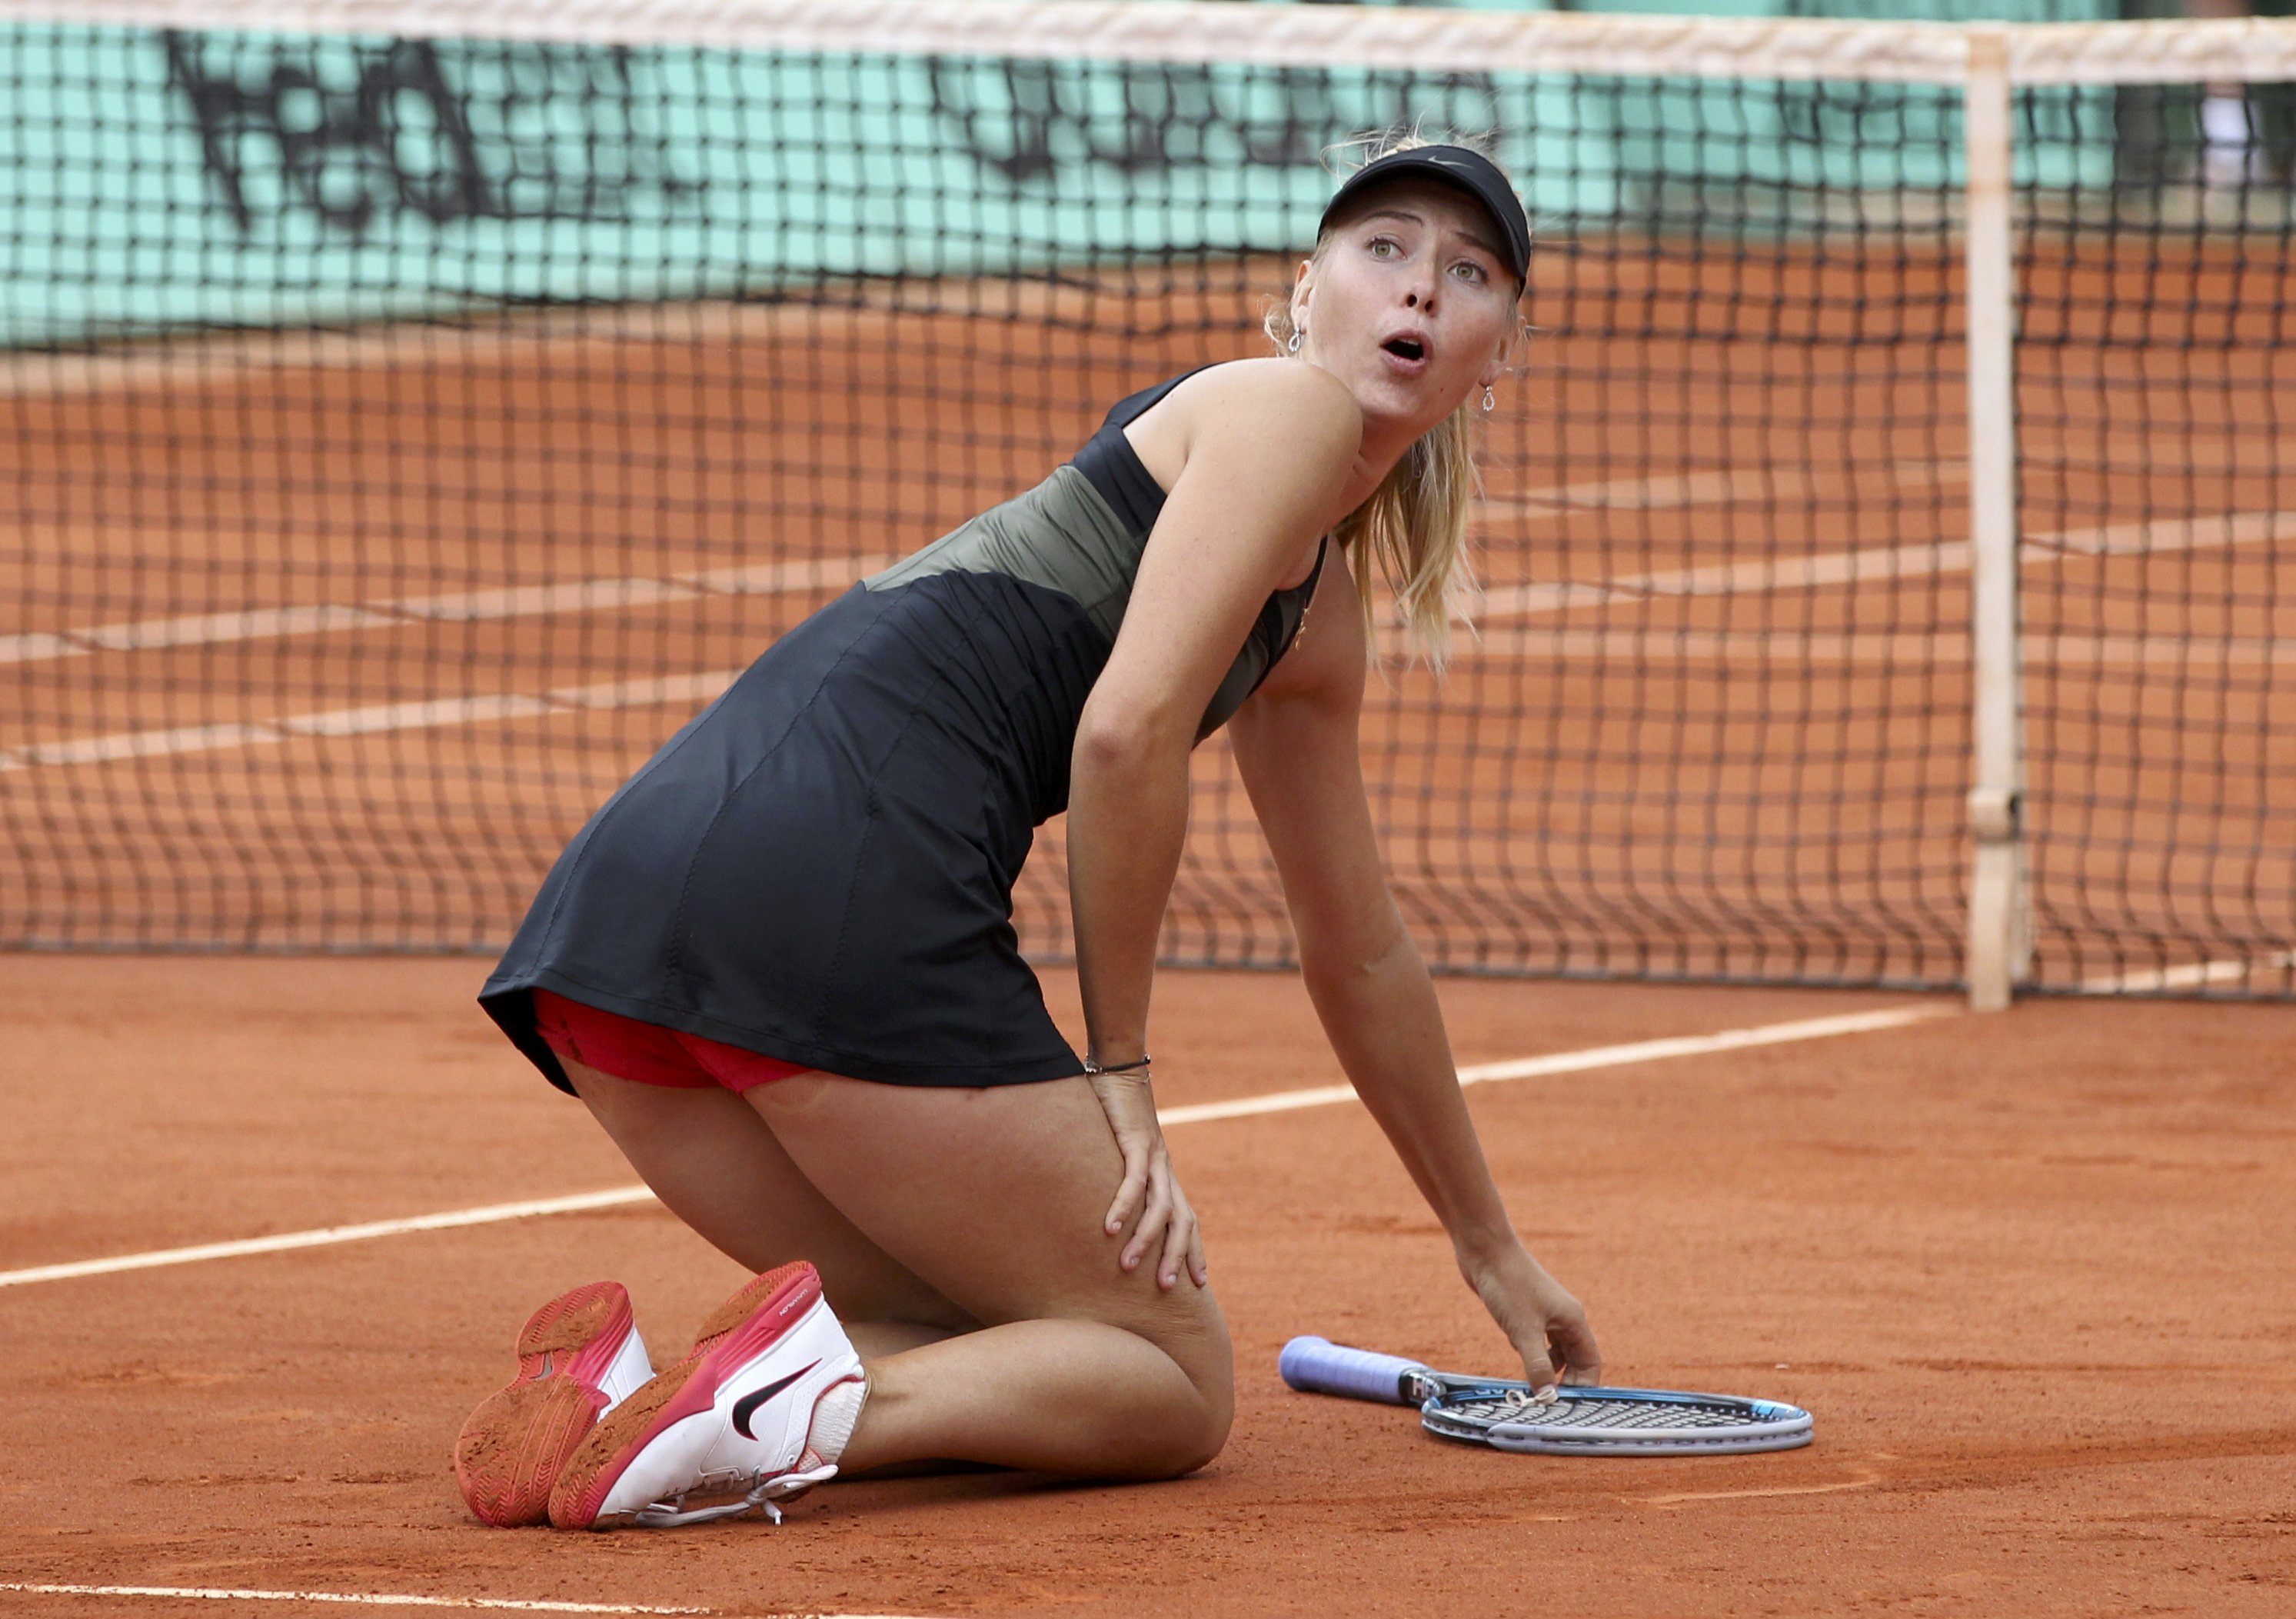 Sharapova of Russia reacts after winning her women's singles final match against Errani of Italy at the French Open tennis tournament at the Roland Garros stadium in Paris